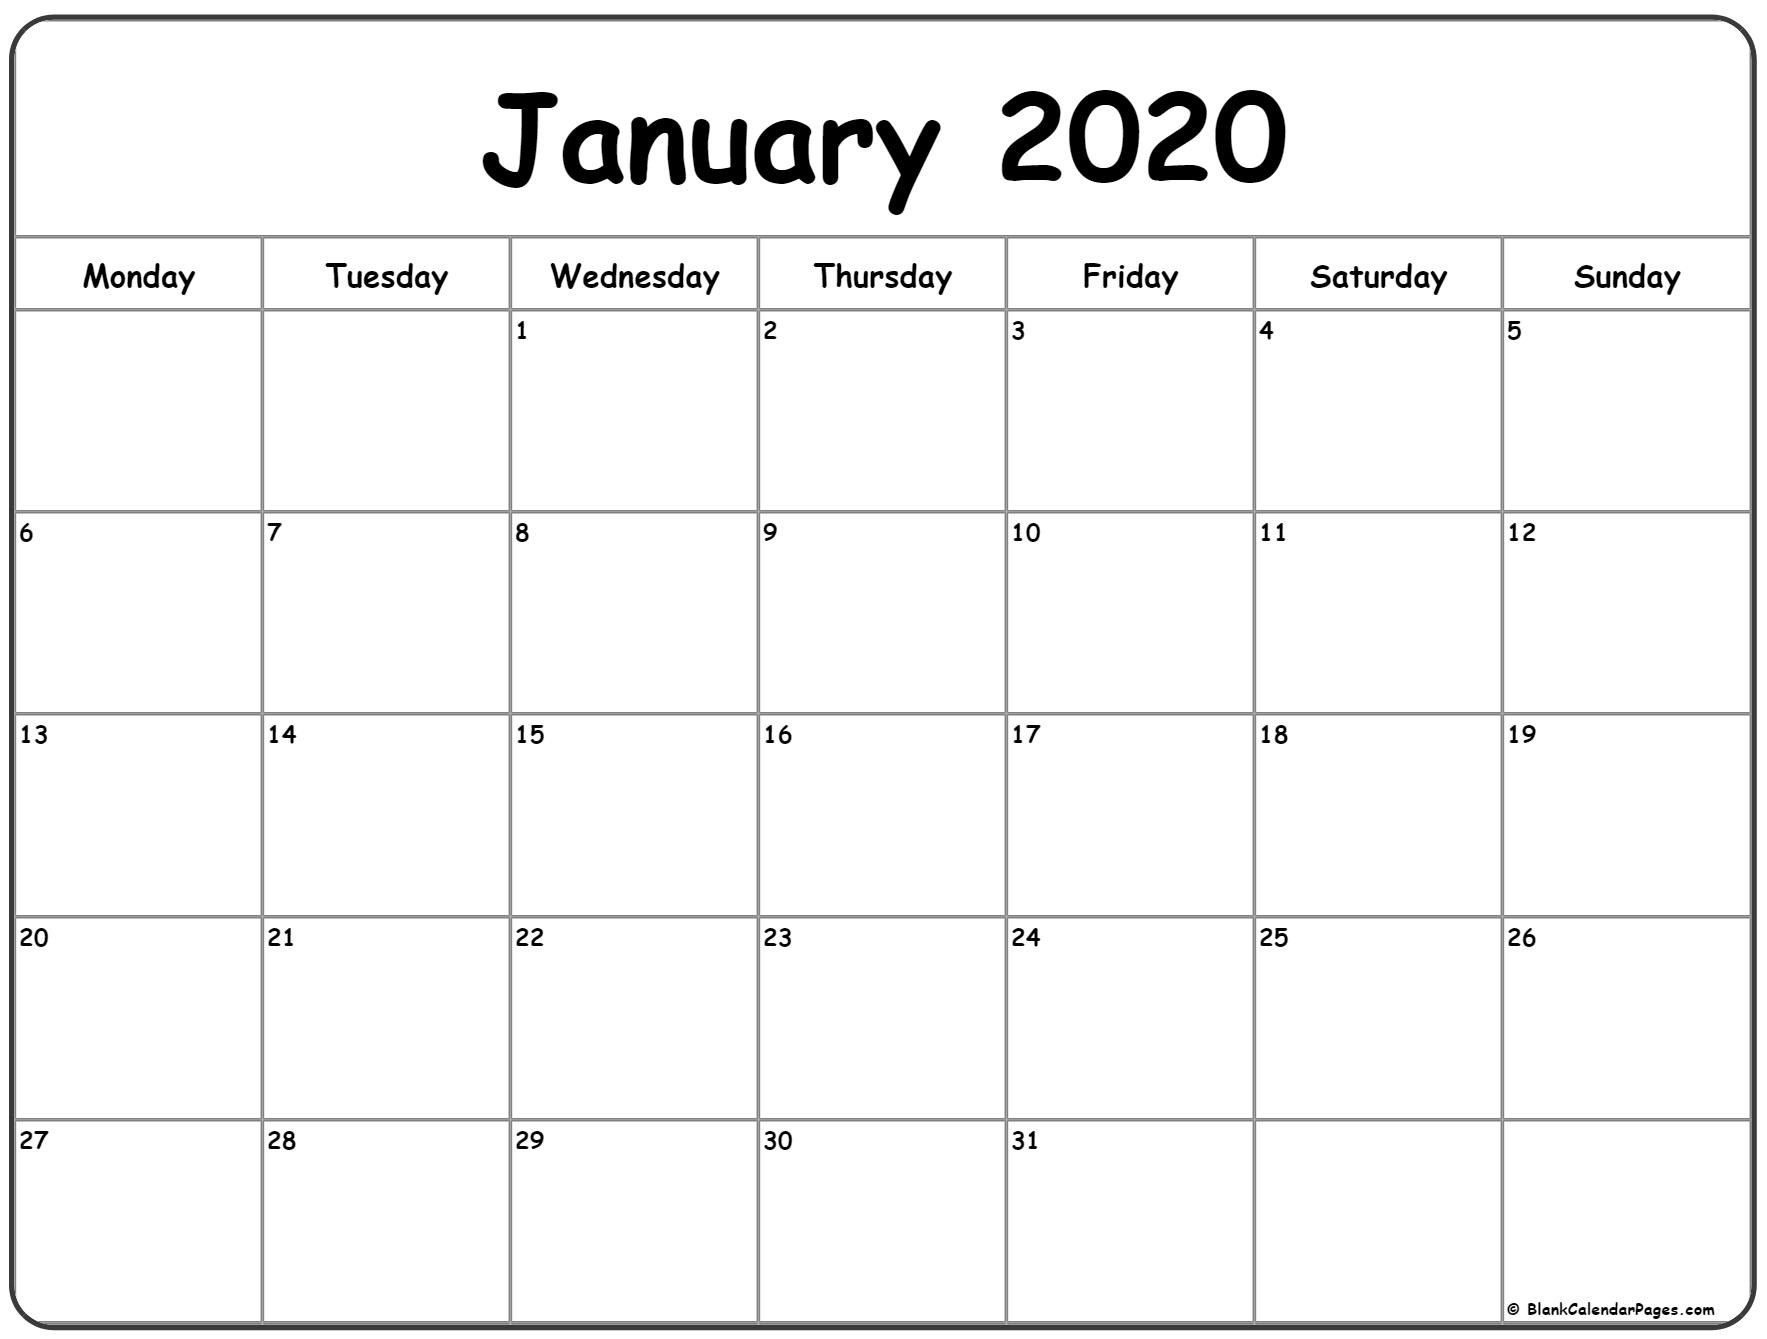 January 2020 Planner-August 2021 Calendar Monday Through Friday Only